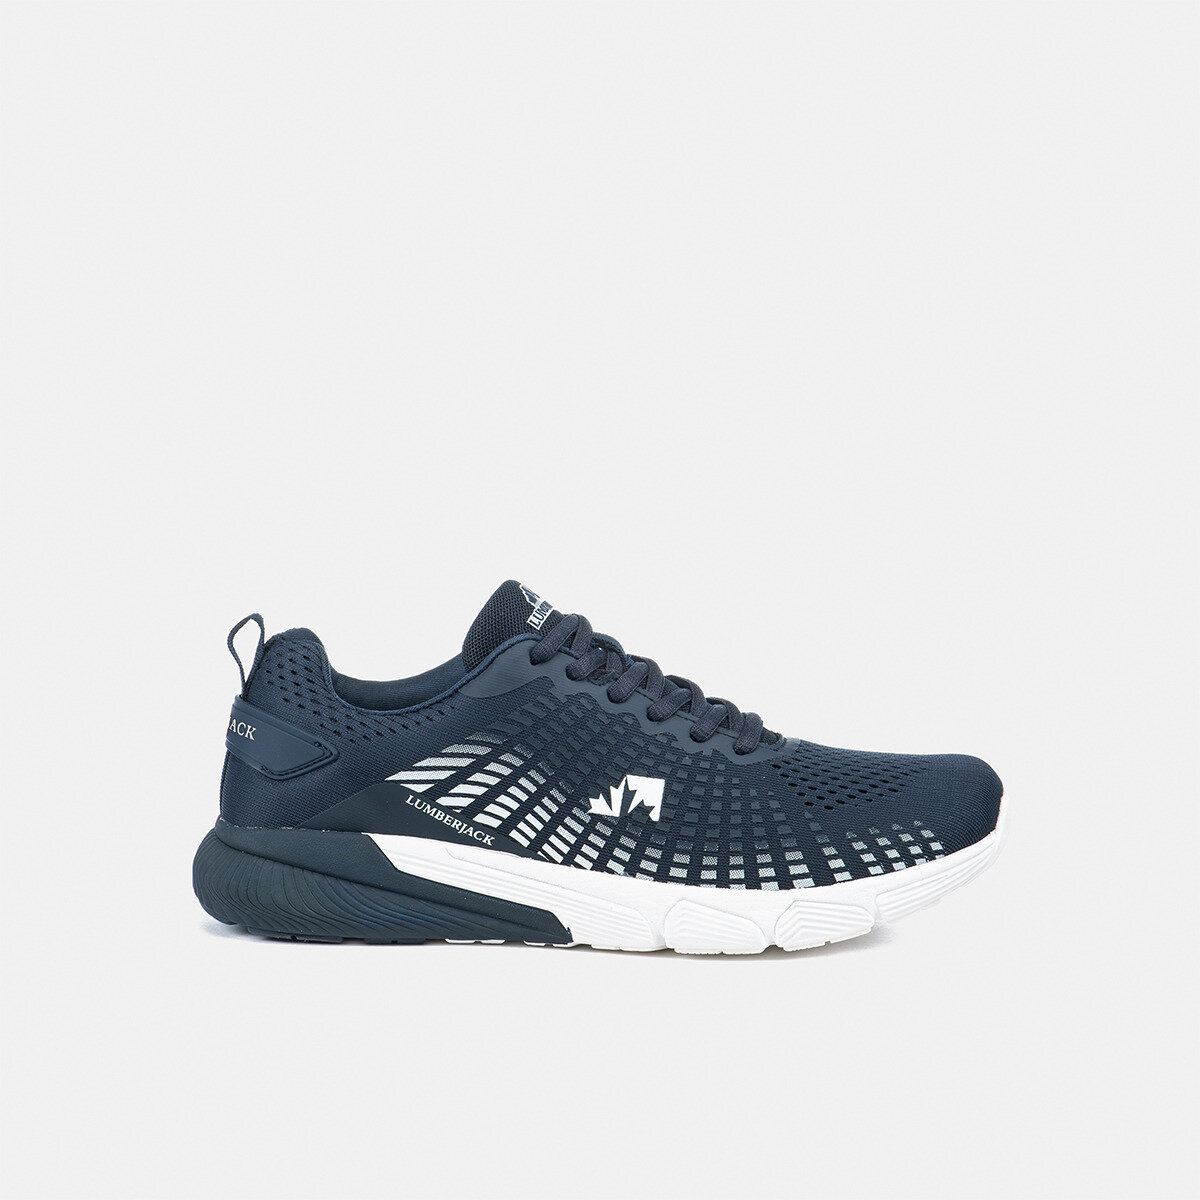 CHEN NAVY BLUE/WHITE Man Running shoes